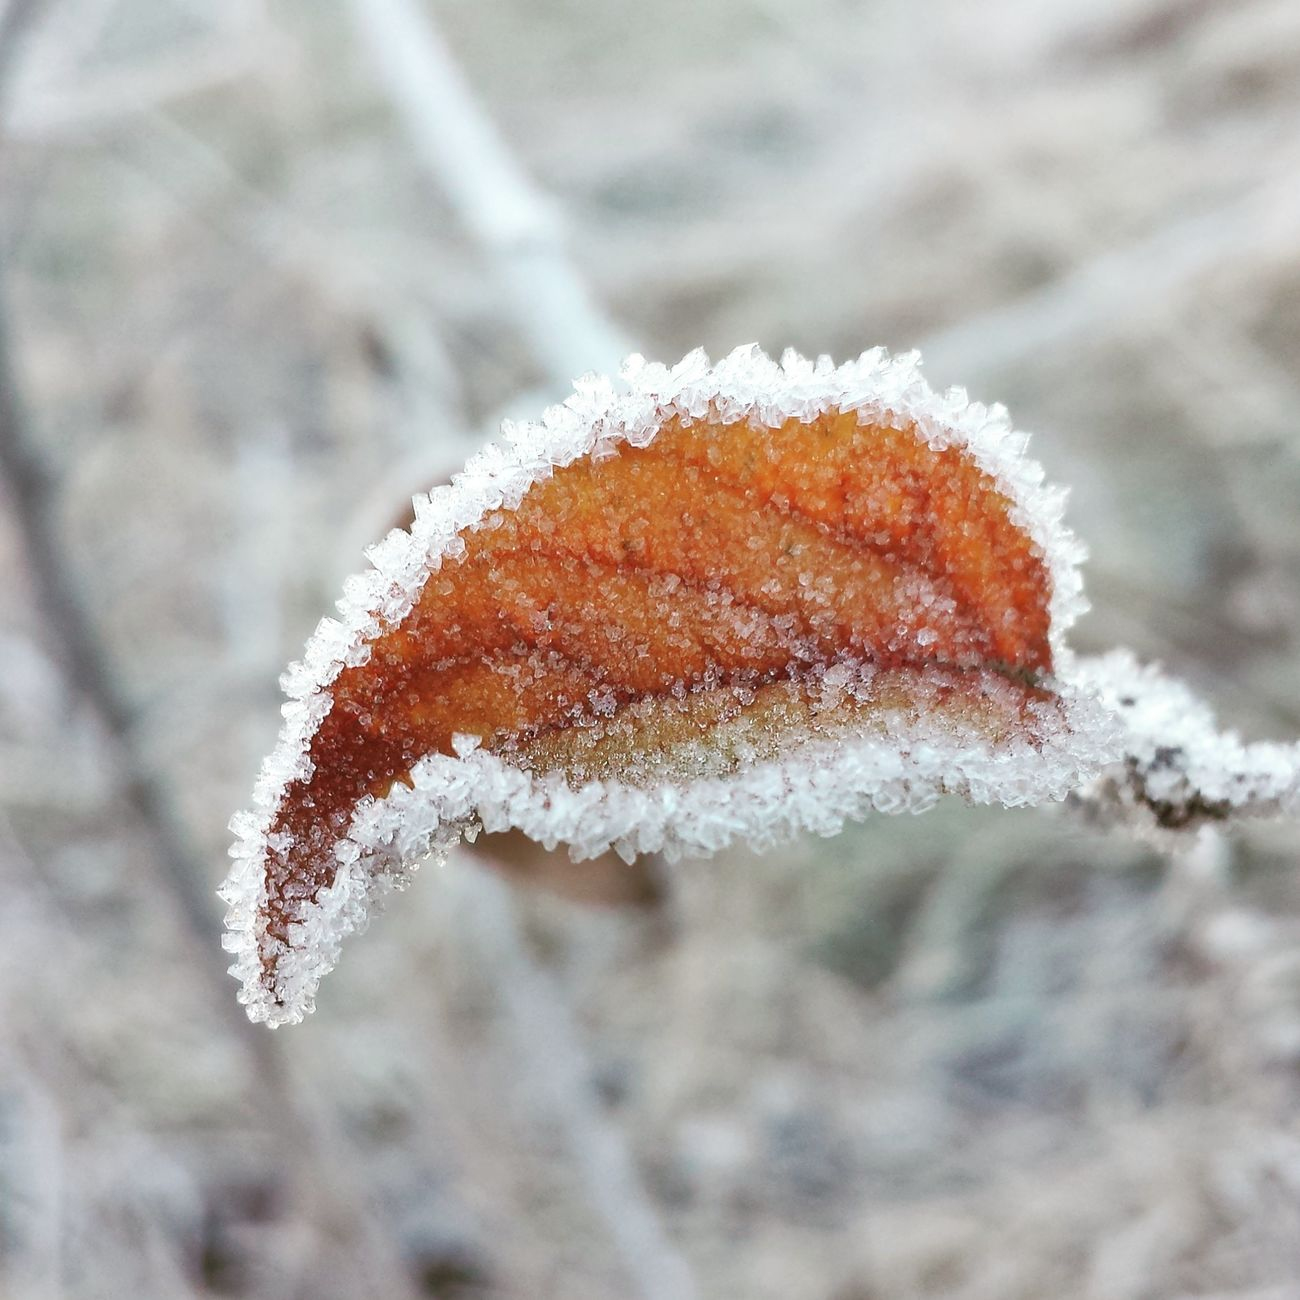 Naturelovers Nature Naturephotography Nature Naturfotografie Naturfoto Naturliebe Naturliebhaber Blatt Leave Orange Eiskristalle Icecrystalls Cold Kalt Winter Winter_collection Selfmade Pic SamsungGalaxyS4